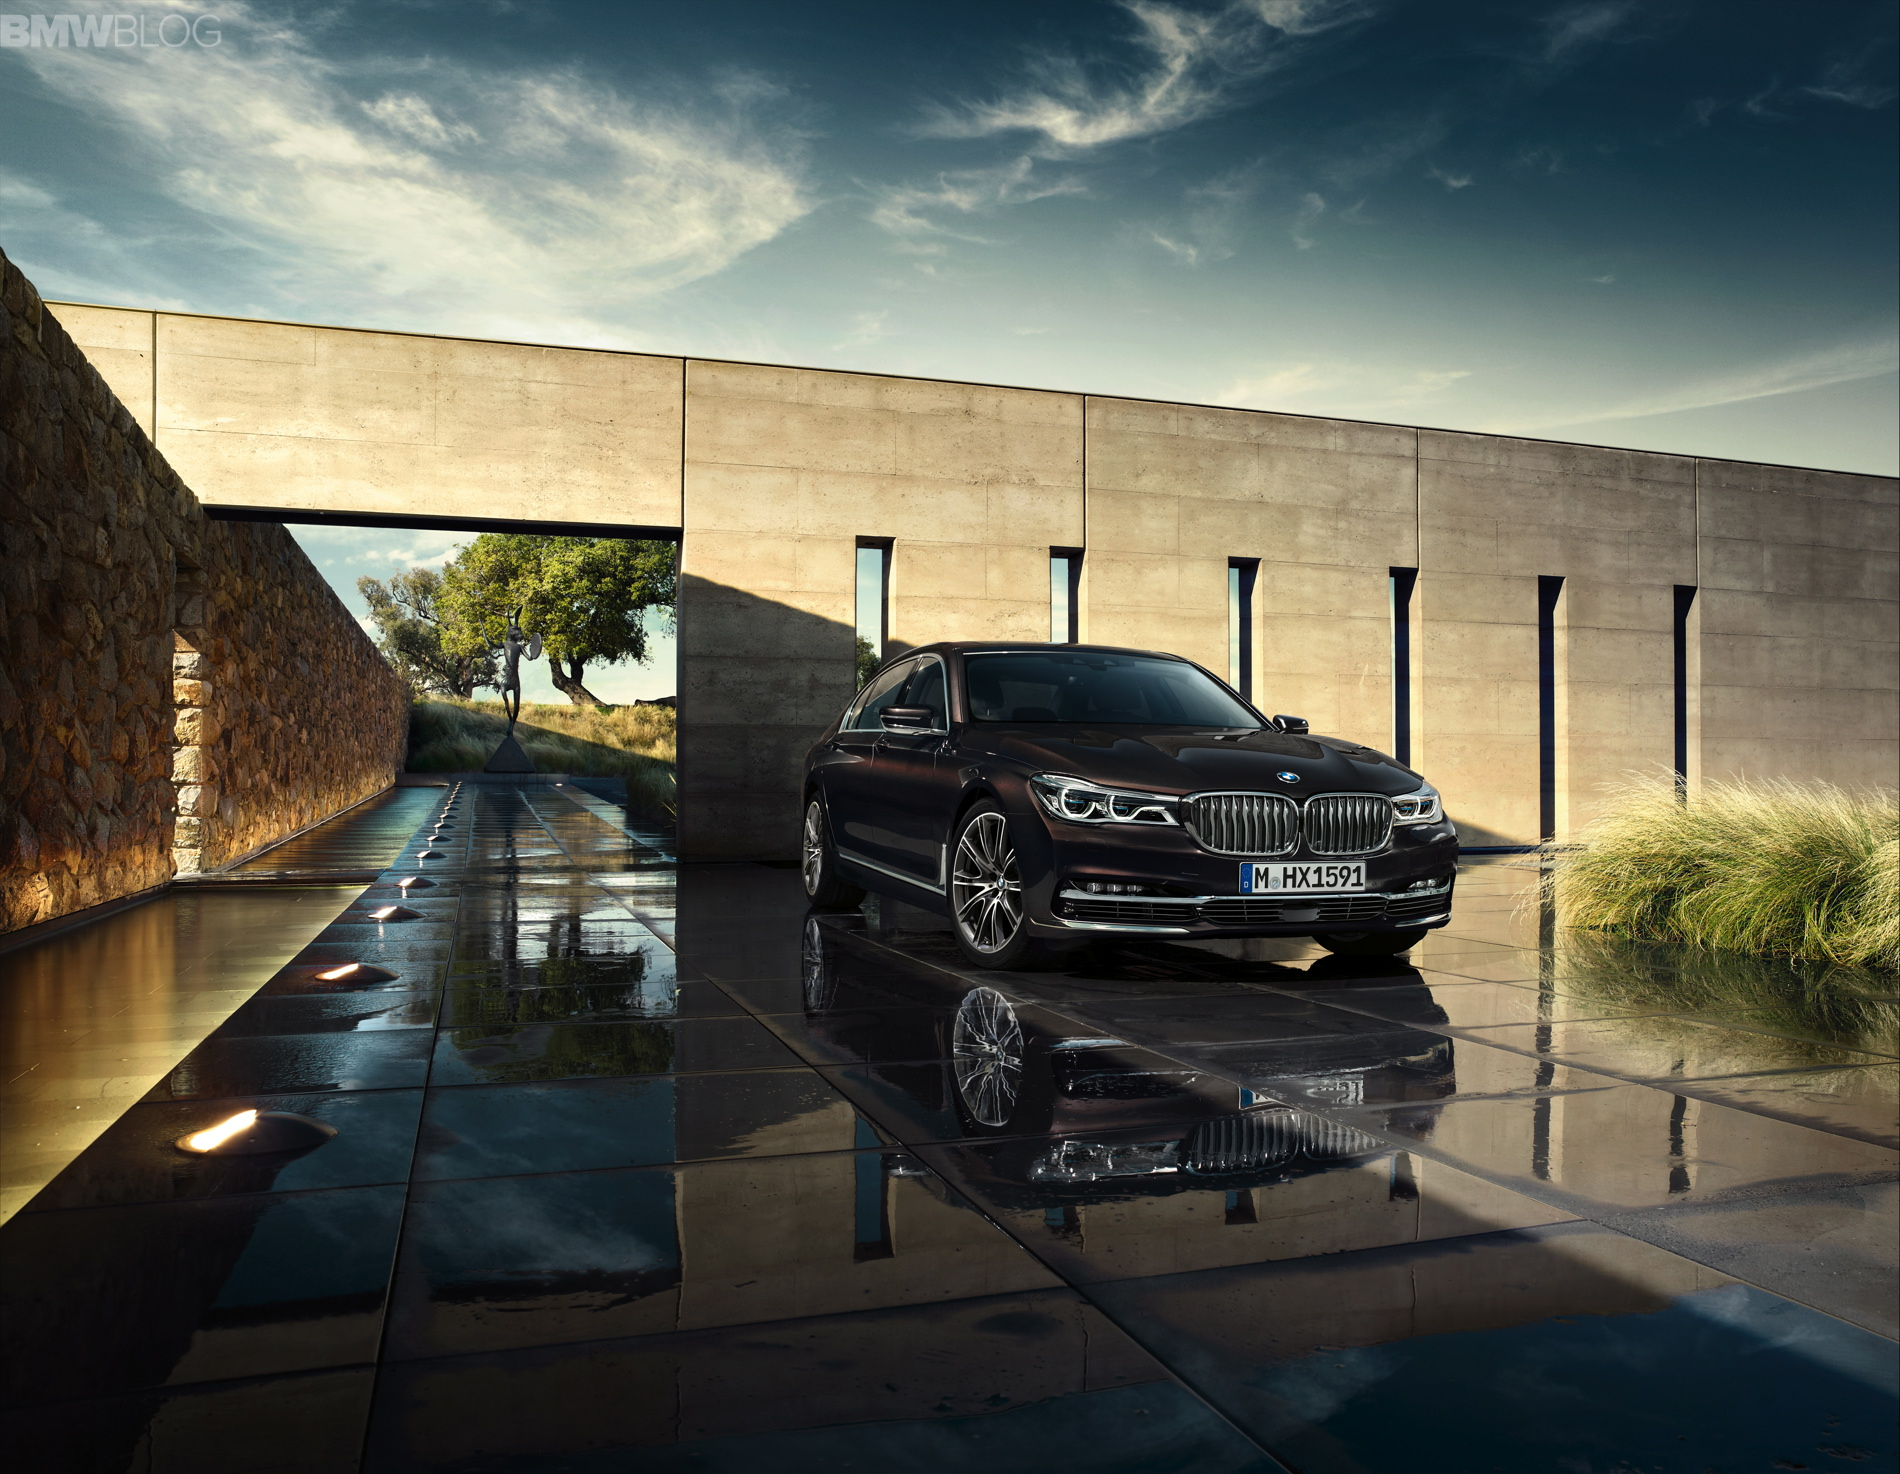 2016 bmw 7 series wallpapers images 1900x1200 16